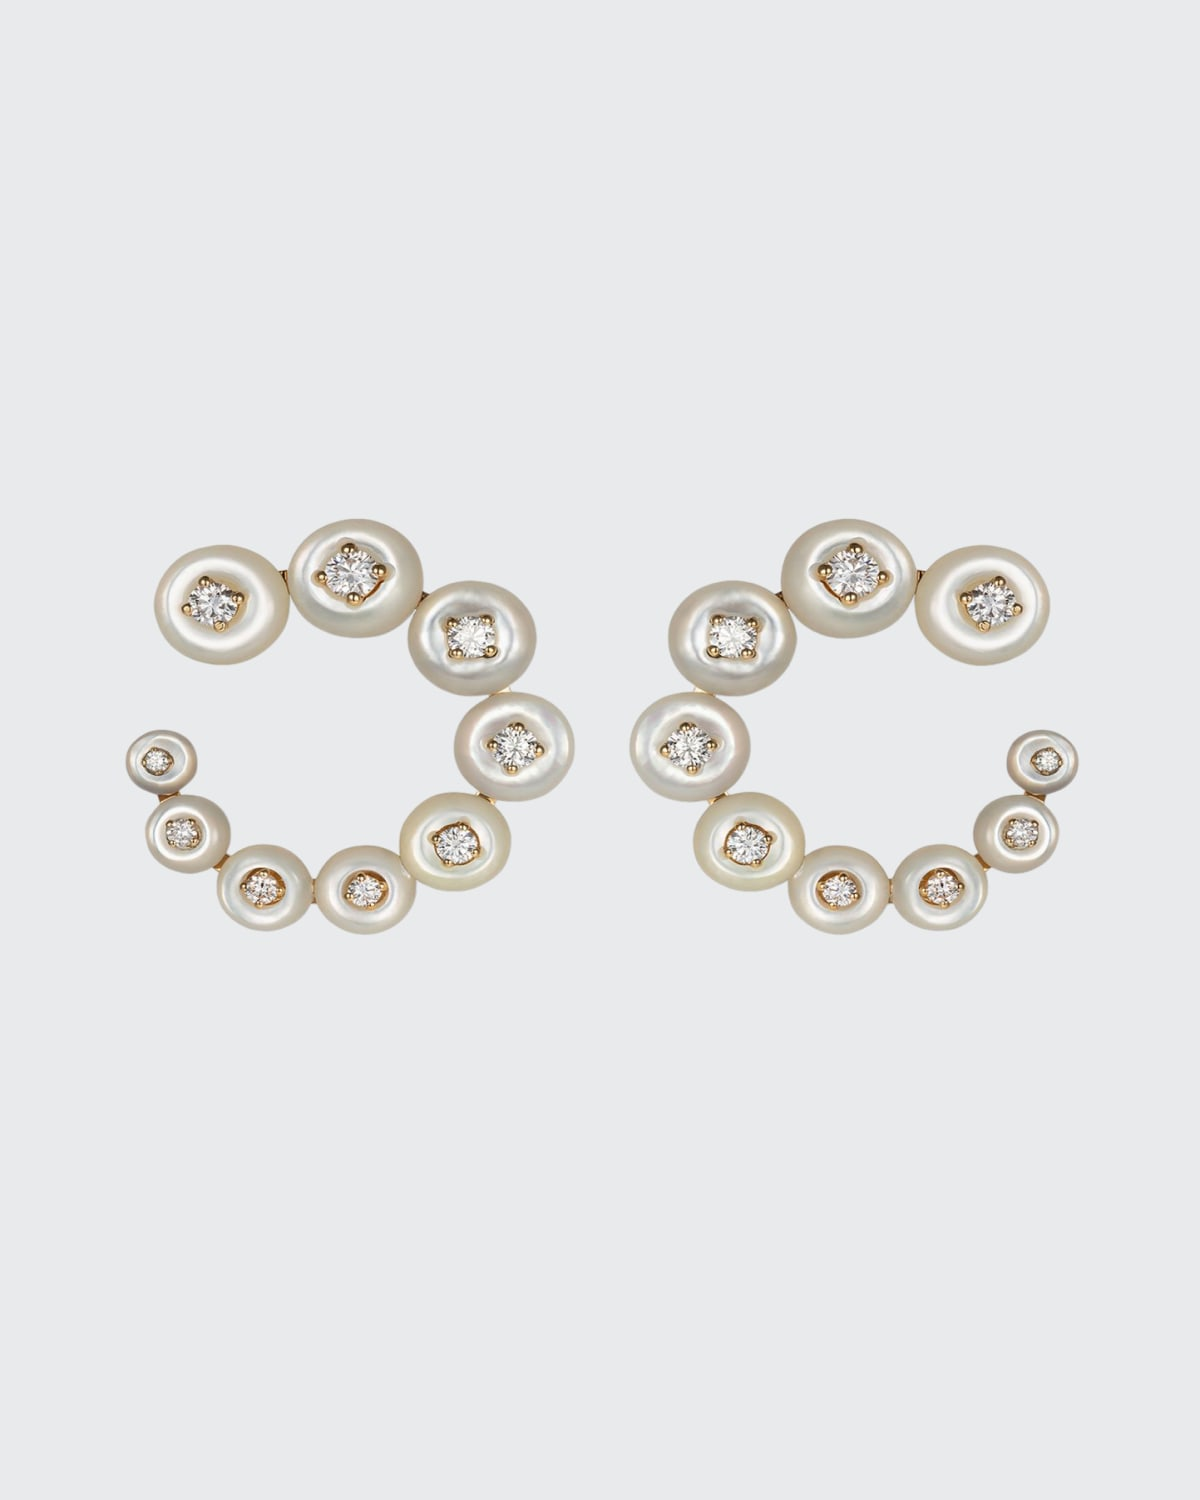 Surrounding Small Circle Earrings with Mother-of-Pearl